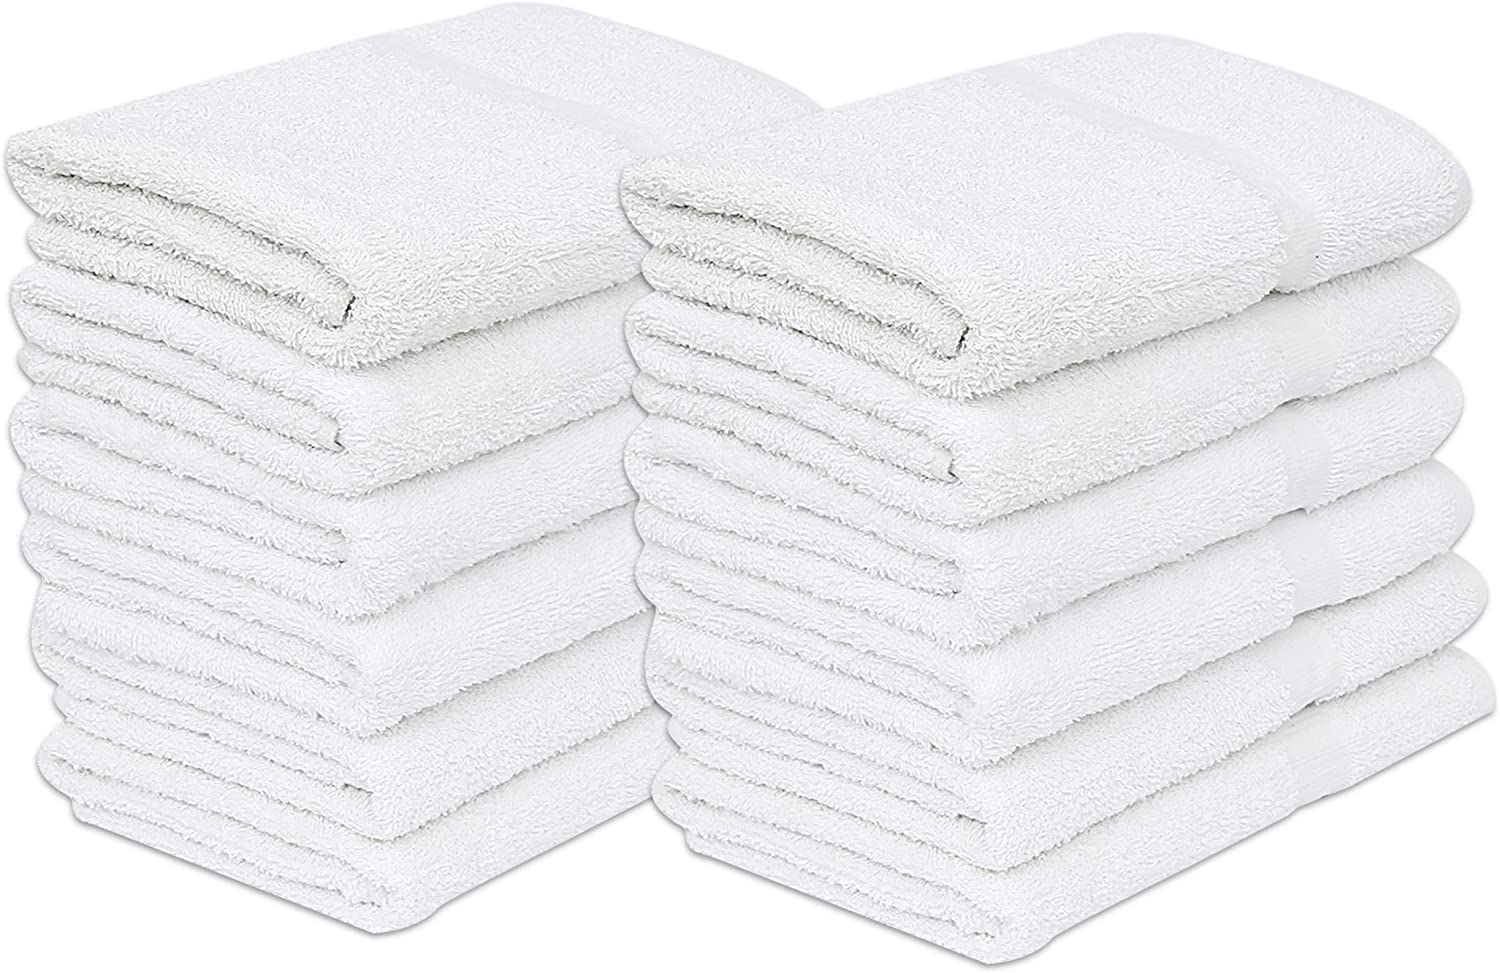 GOLD TEXTILES 12 Pack White Economy Bath Towel (24x 48 Inch) Cotton Blend for Softness Easy Care-Home,spa,Resort,Hotels/Motels,Gym use (12)